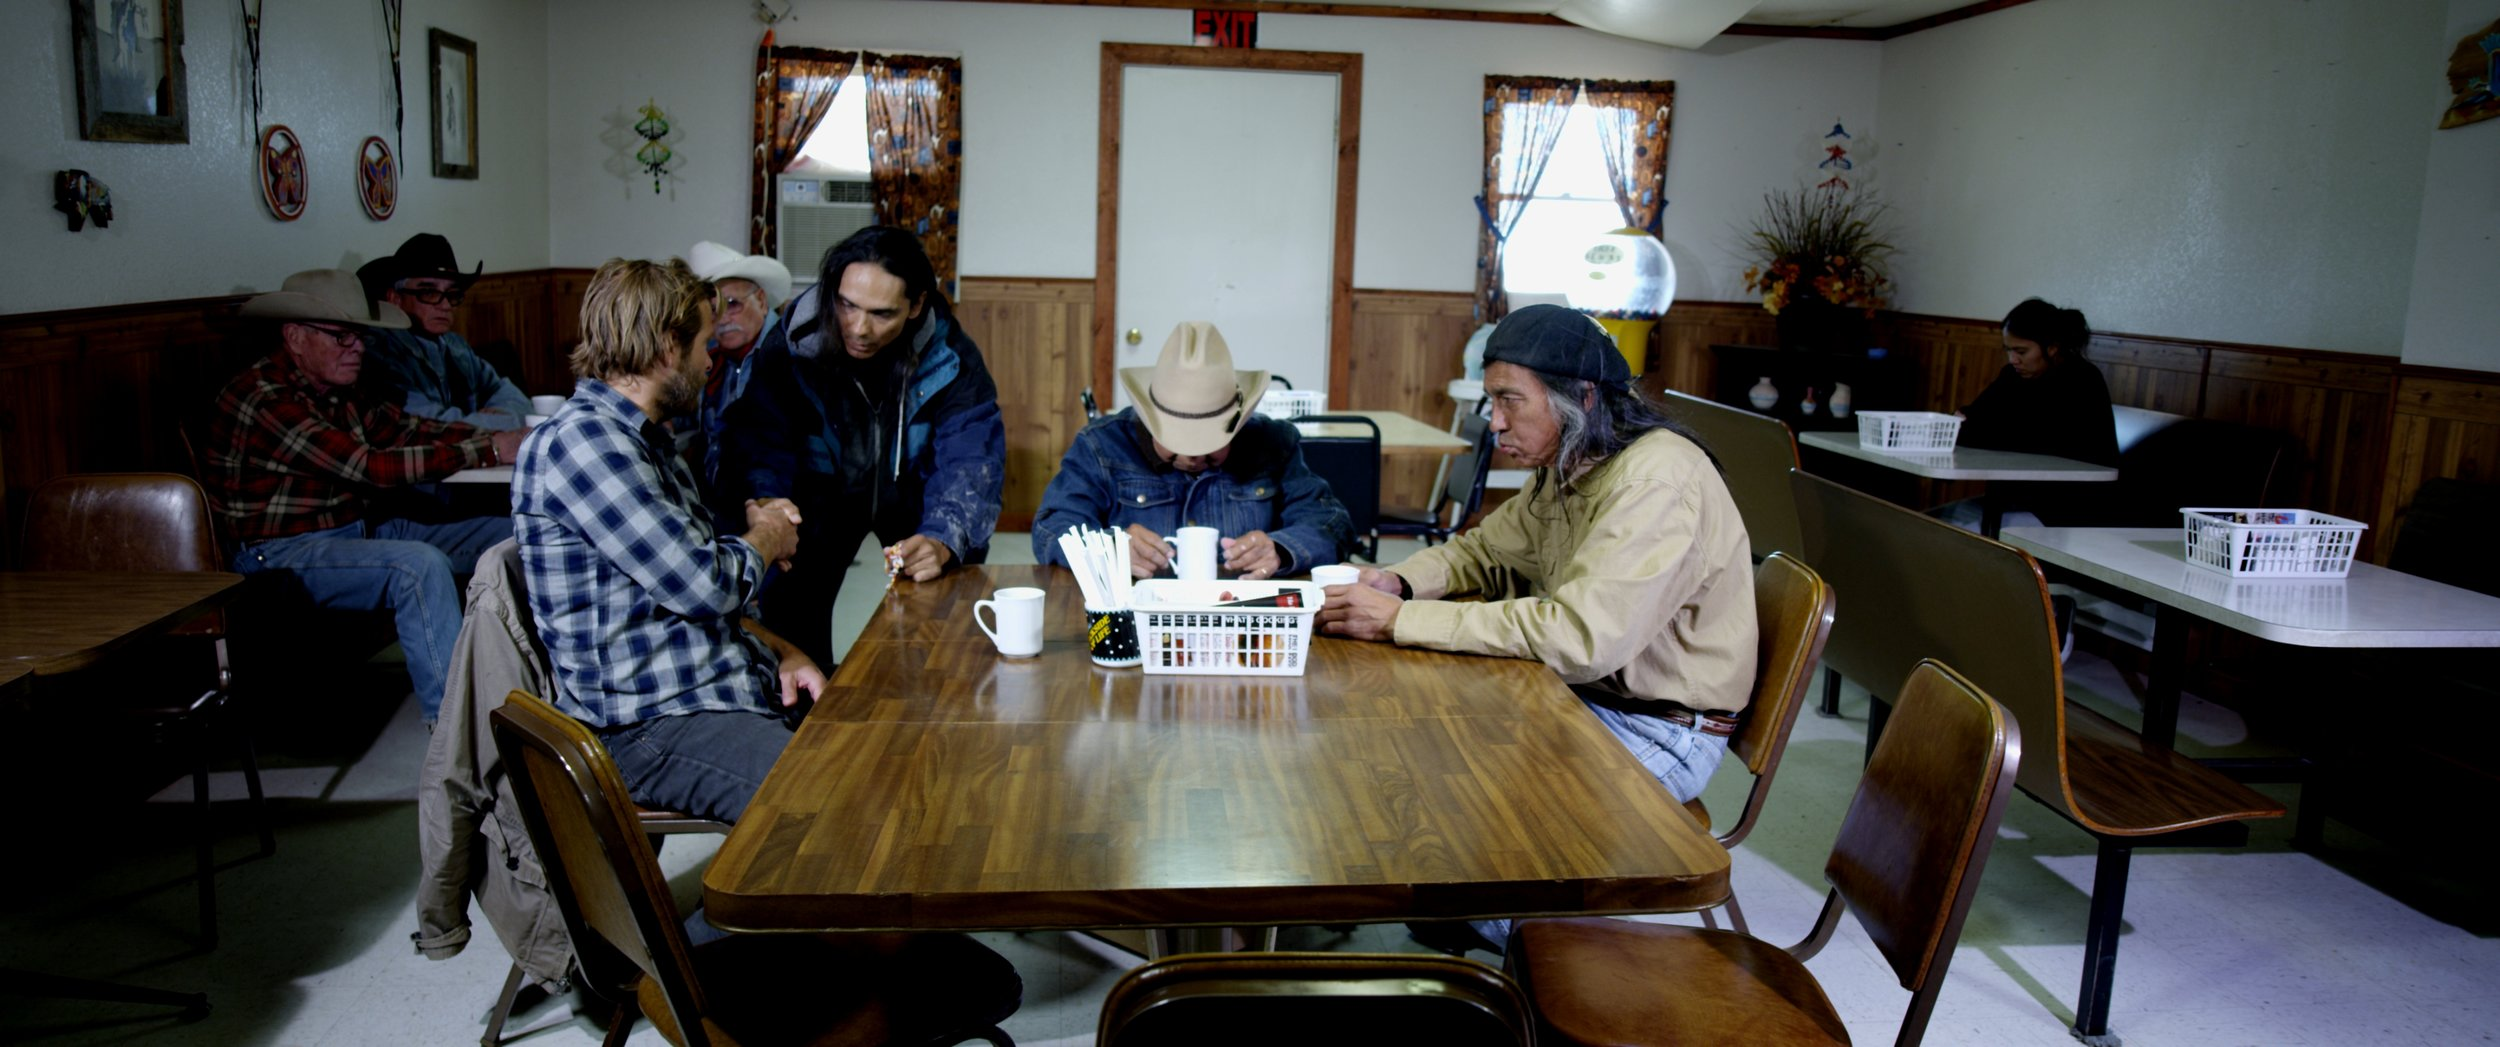 MAS - Landmark Native Film, Neither Wolf Nor Dog, Opens At The Valley Cinema In Wasilla, AK On September 15th & Will Play For At Least One Week. 5 - Copy.jpg